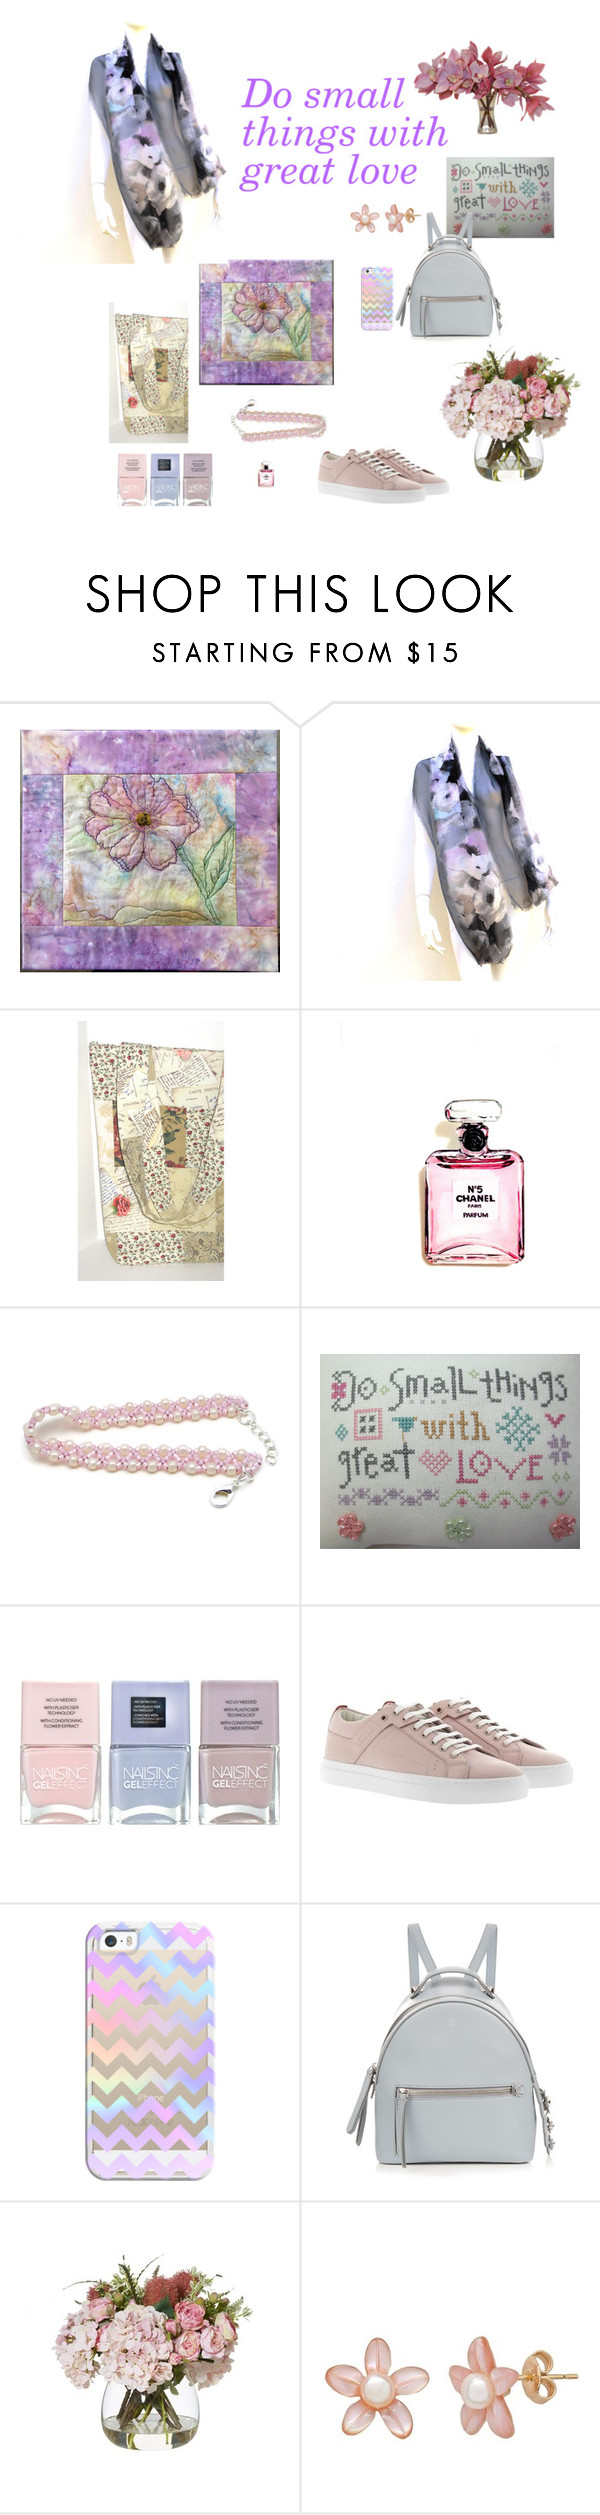 """Do small things with great love"" by juliaheartfelt ❤ liked on Polyvore featuring Chanel, Nails Inc., HUGO, Casetify, Fendi and The French Bee"